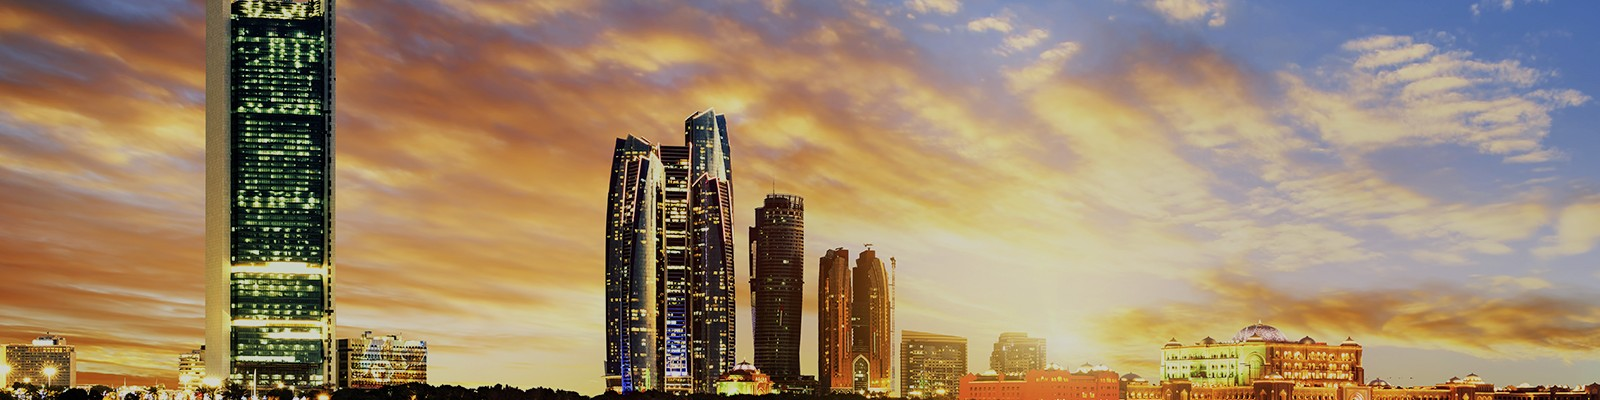 abu dhabi honeymoon packages header